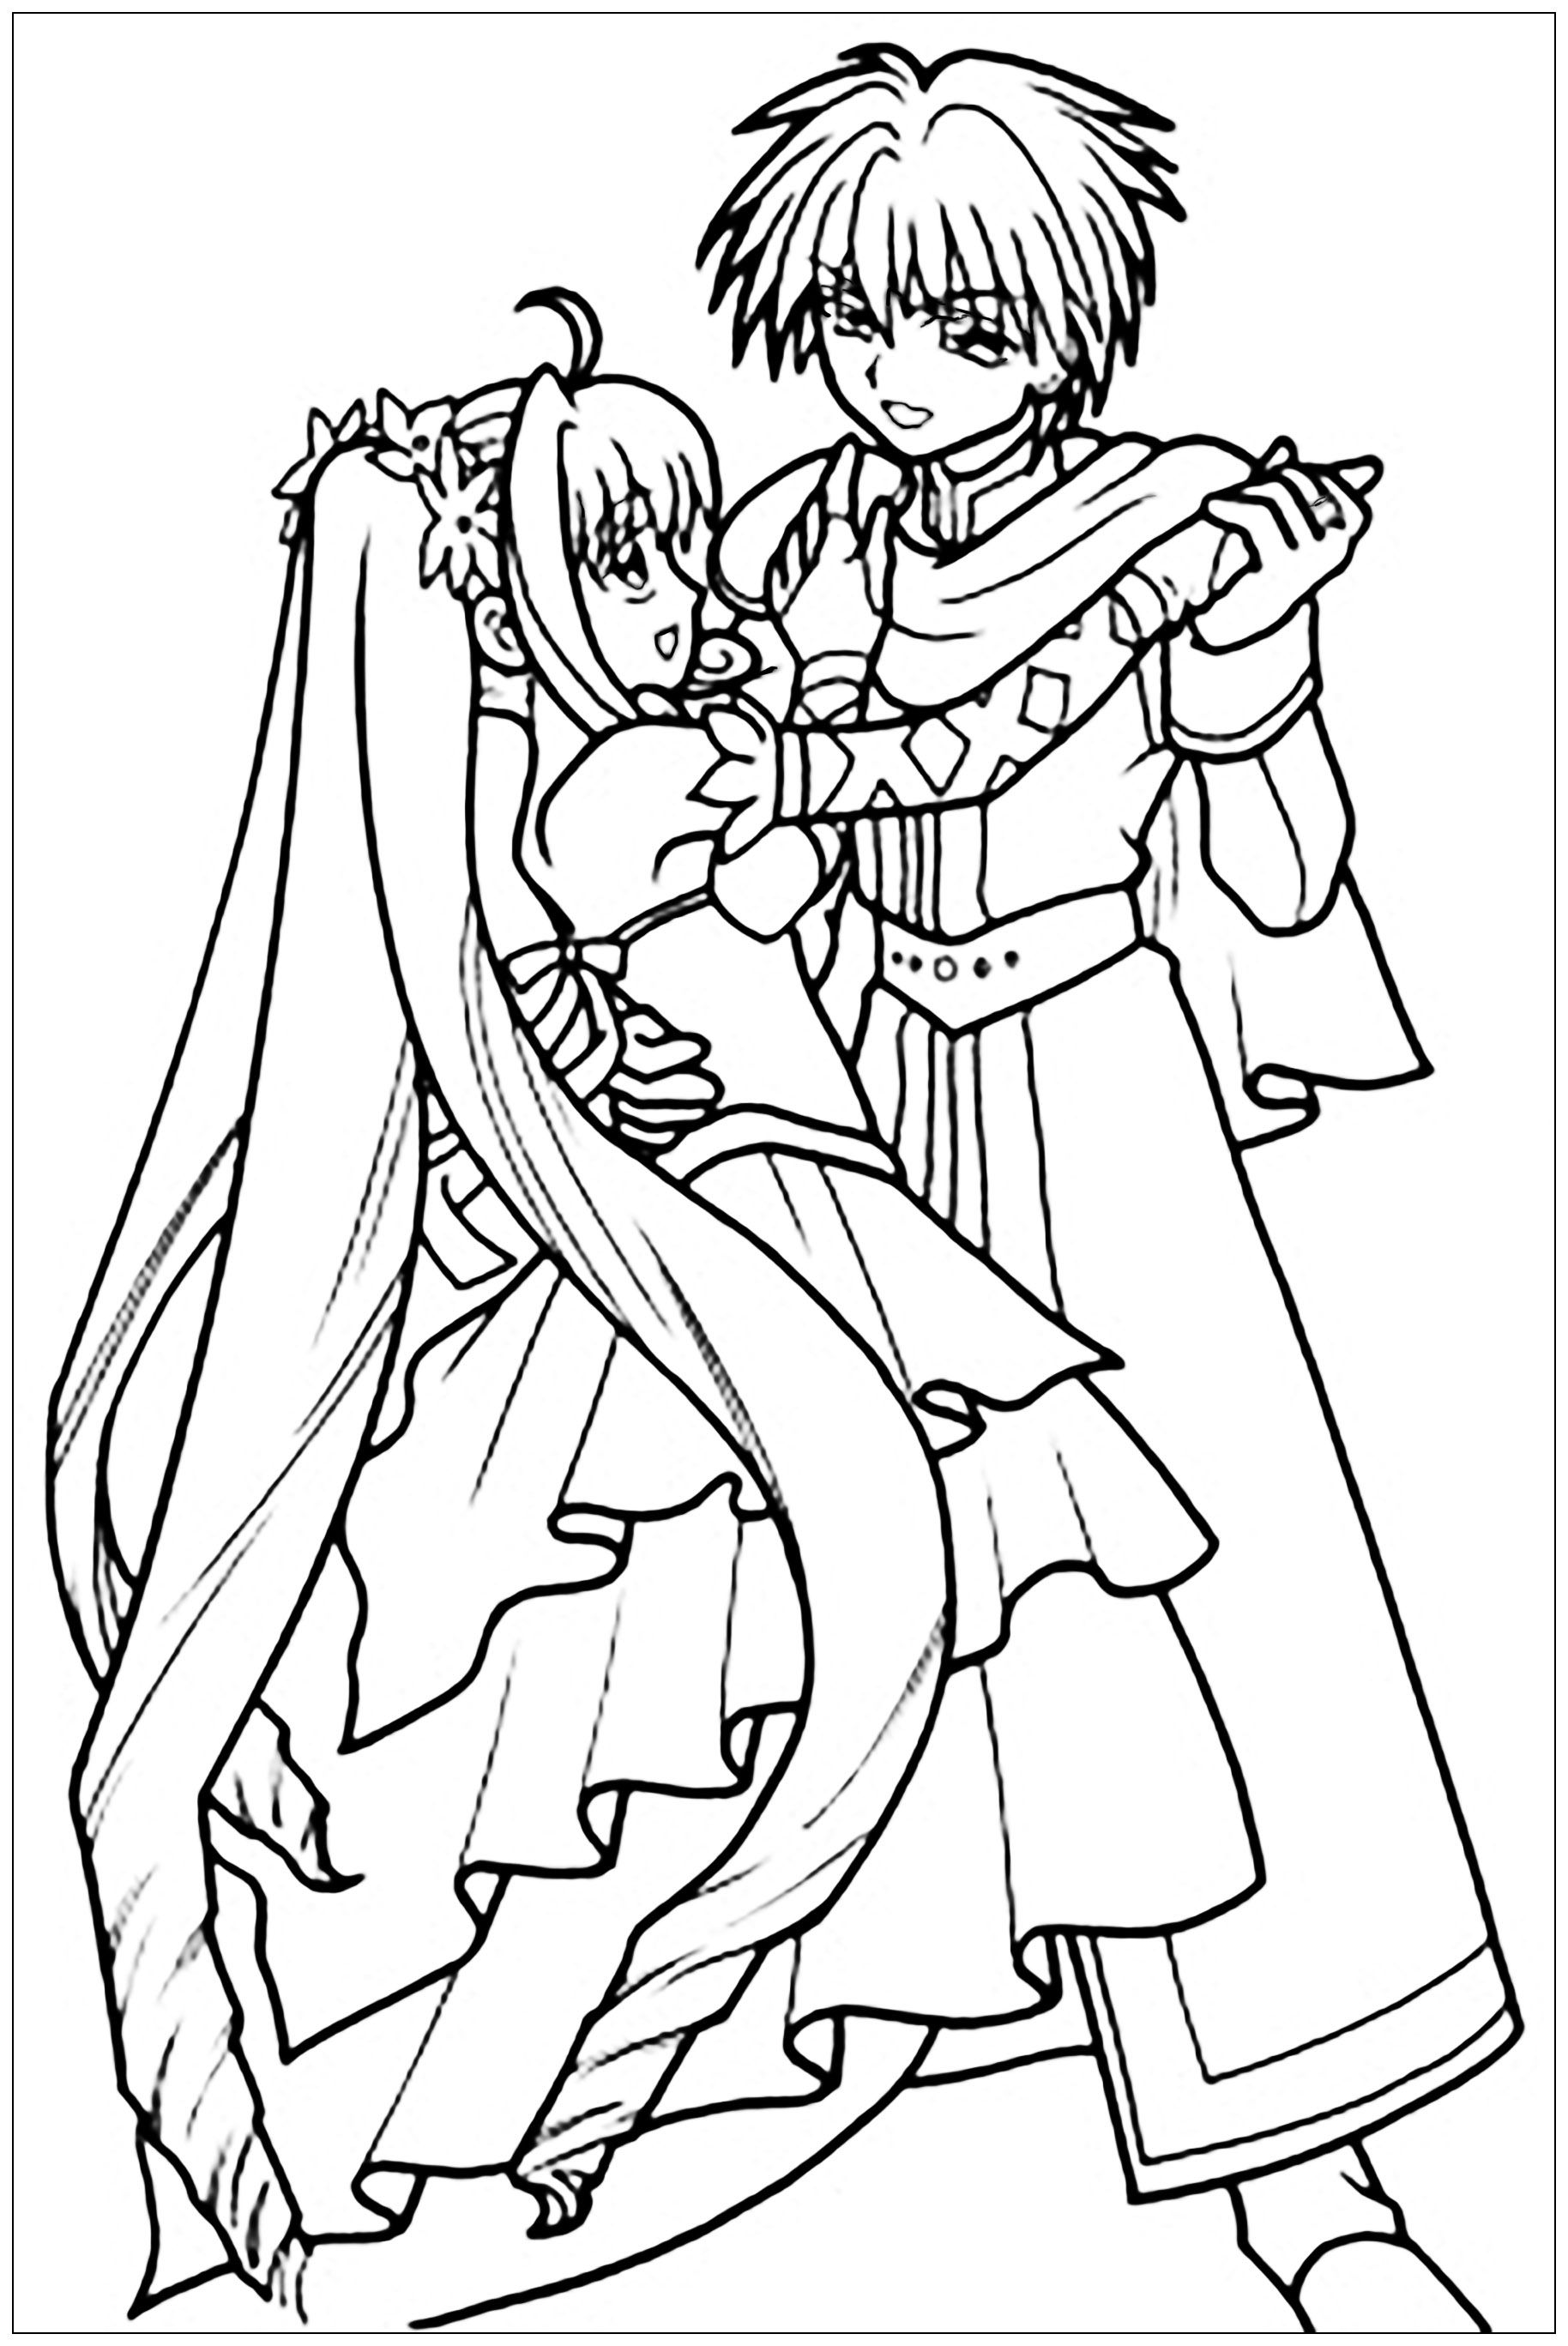 Manga Drawing Representing A Young Man And A Young Woman Dancing With Princess Dress And Beautiful Drawingfr Mermaid Melody Cool Coloring Pages Coloring Pages [ 2735 x 1828 Pixel ]